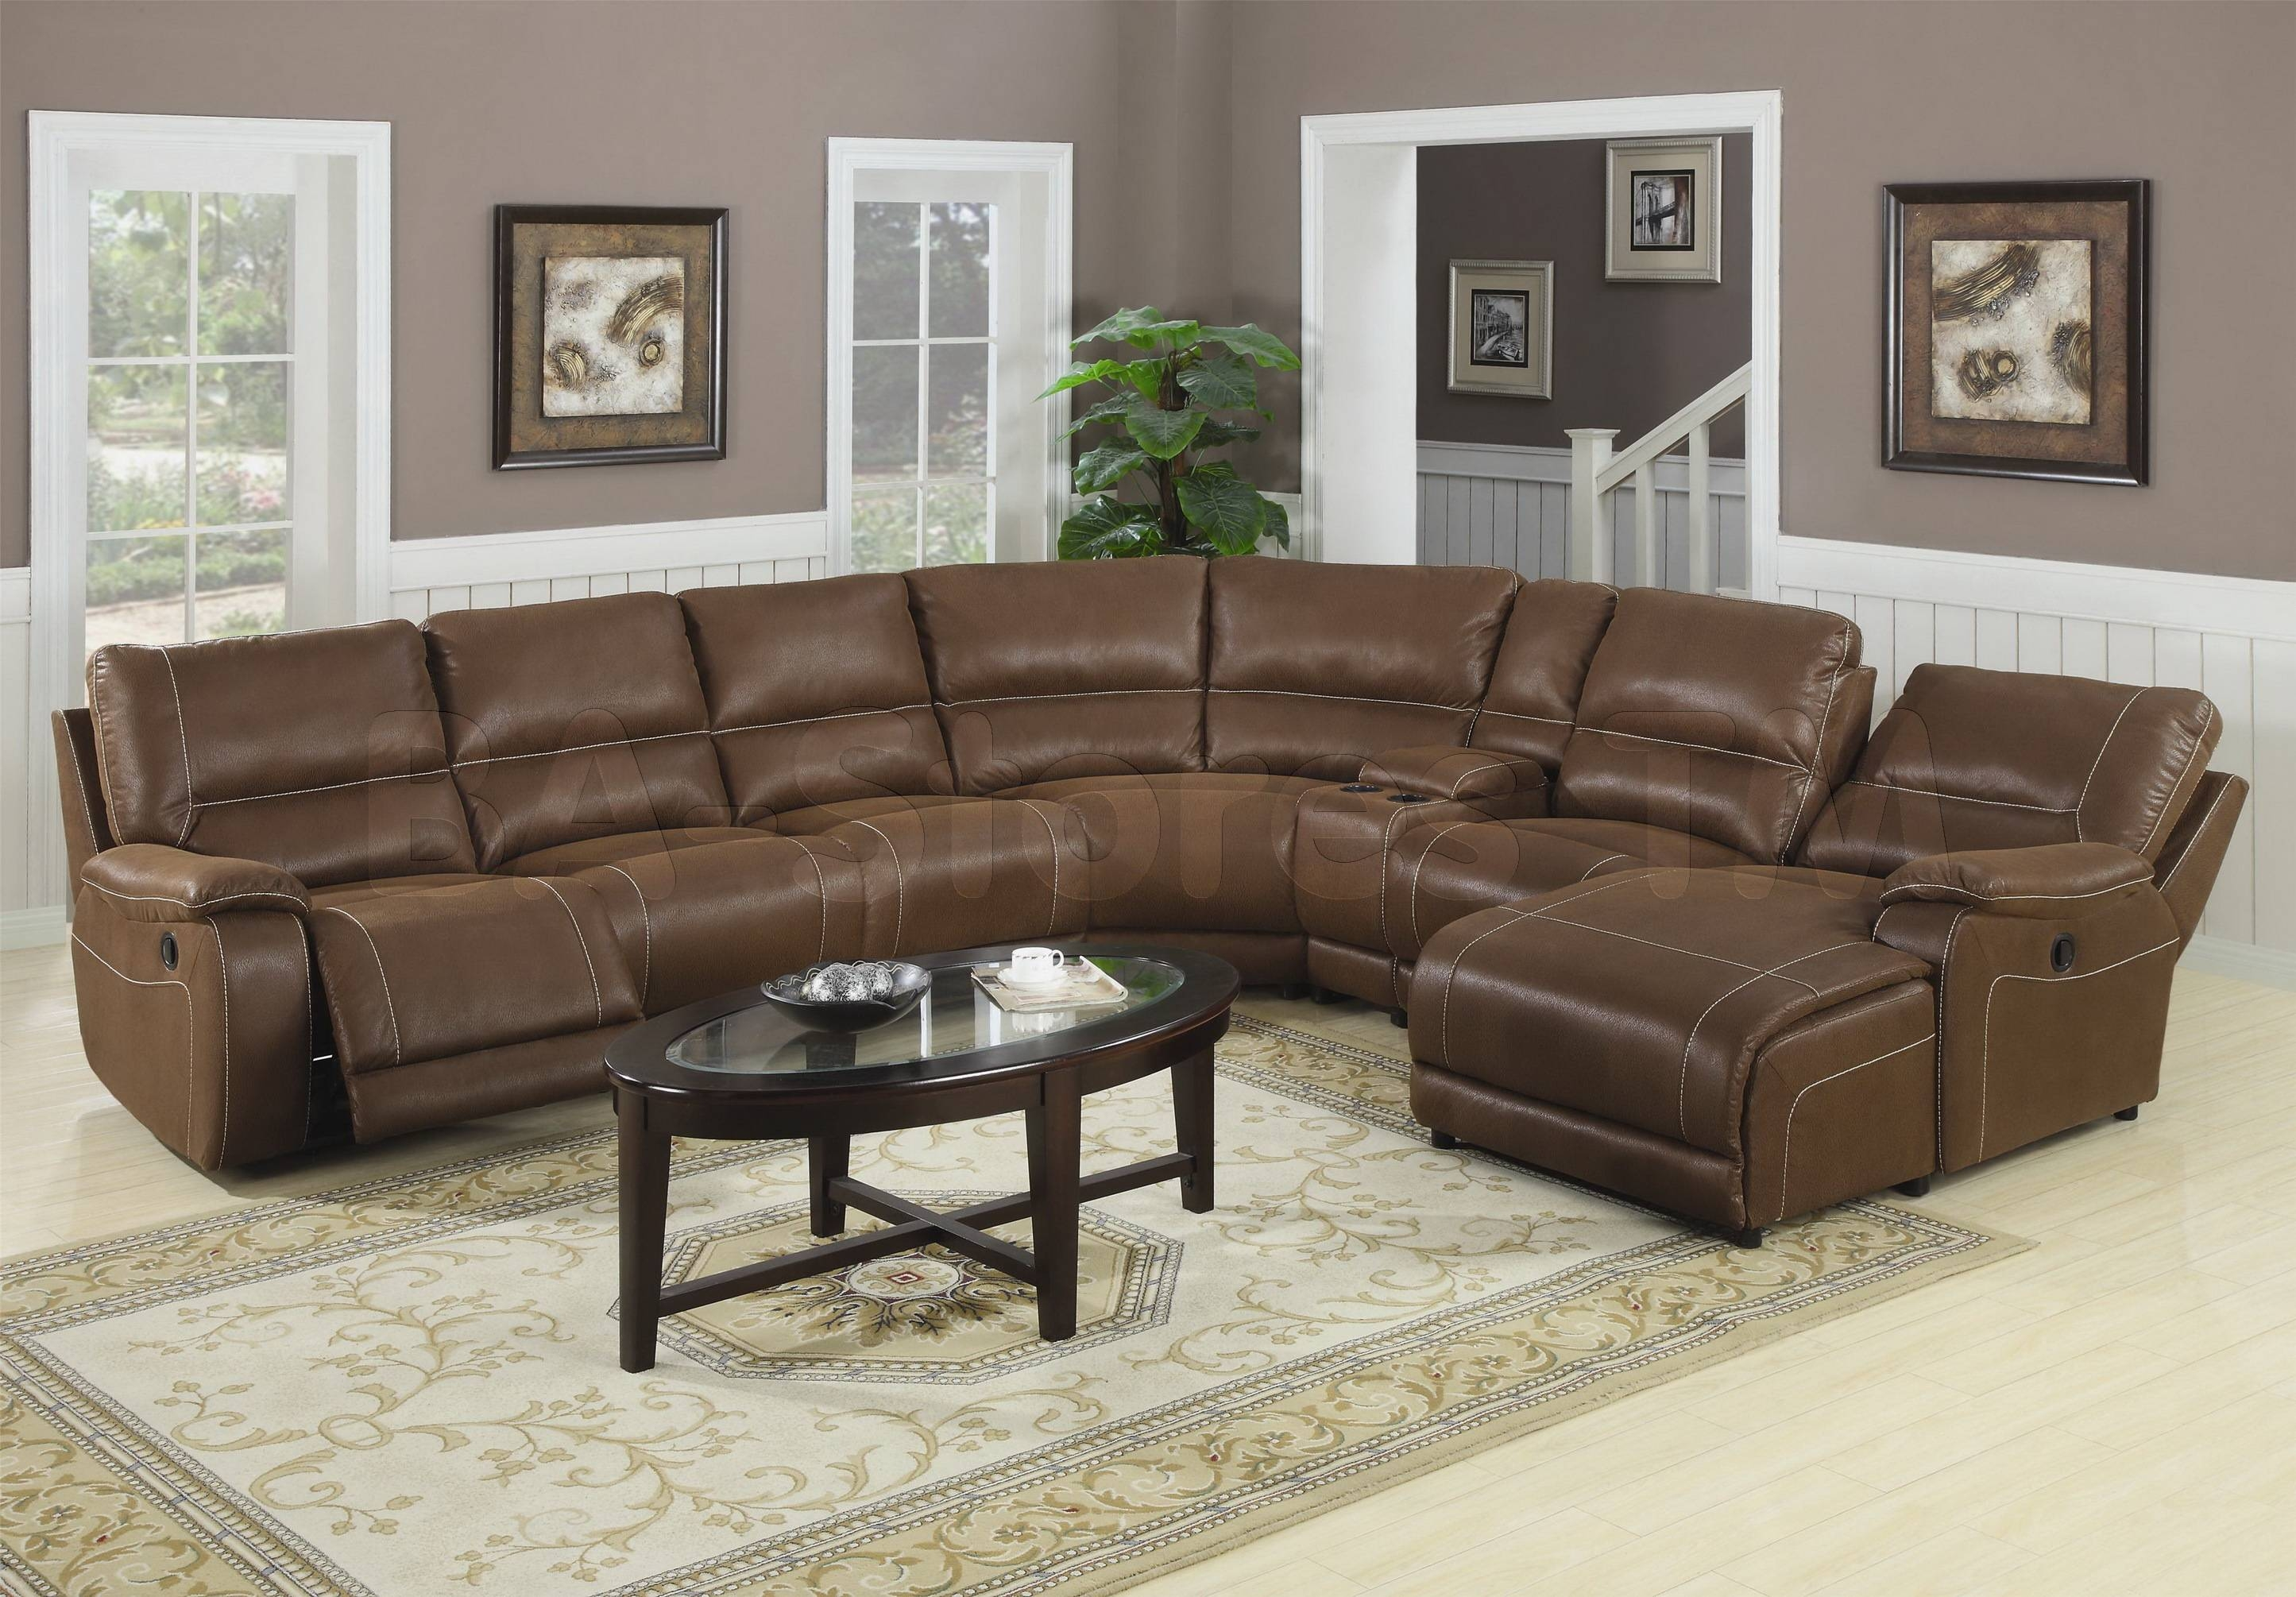 Cool Huge Sectional Sofas 69 On Bentley Sectional Leather Sofa regarding Bentley Sectional Leather Sofa (Image 15 of 30)